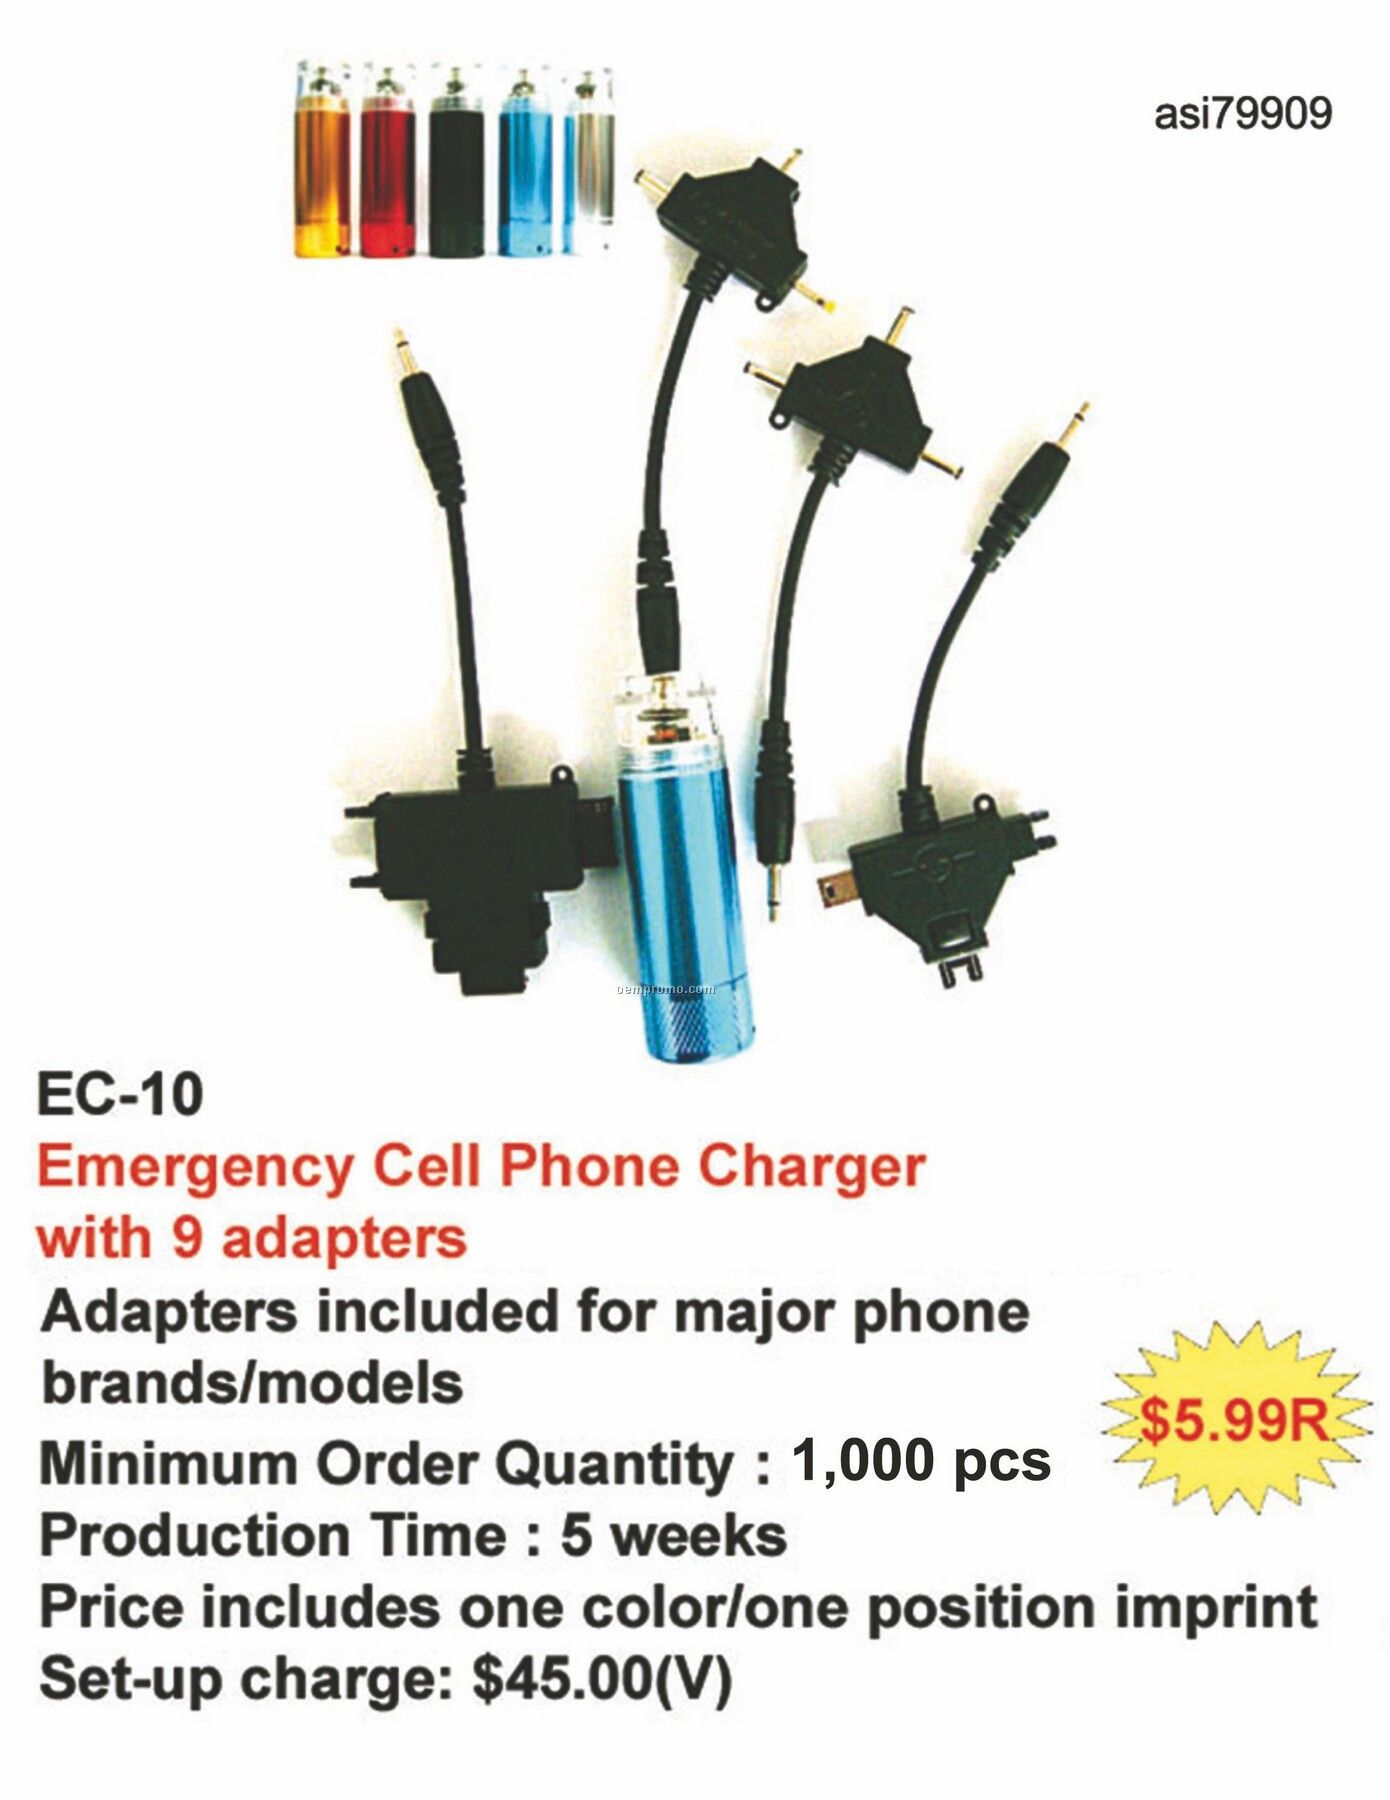 Emergency Cell Phone Charger For Iphone, Ipod, Android, Blackberry